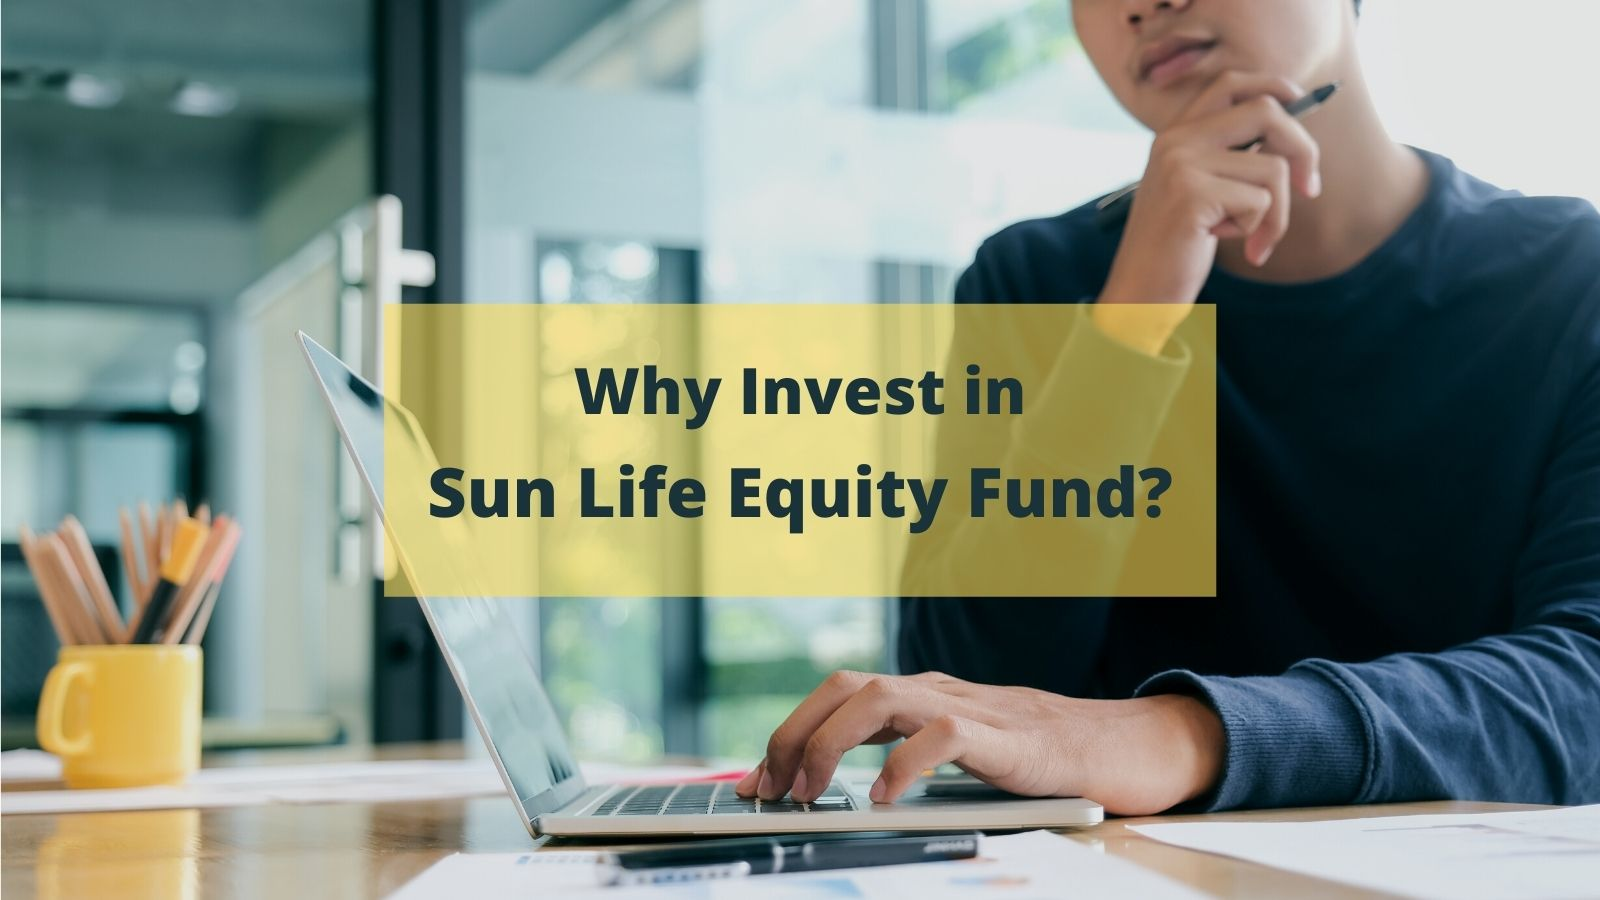 sun life equity fund review 2020